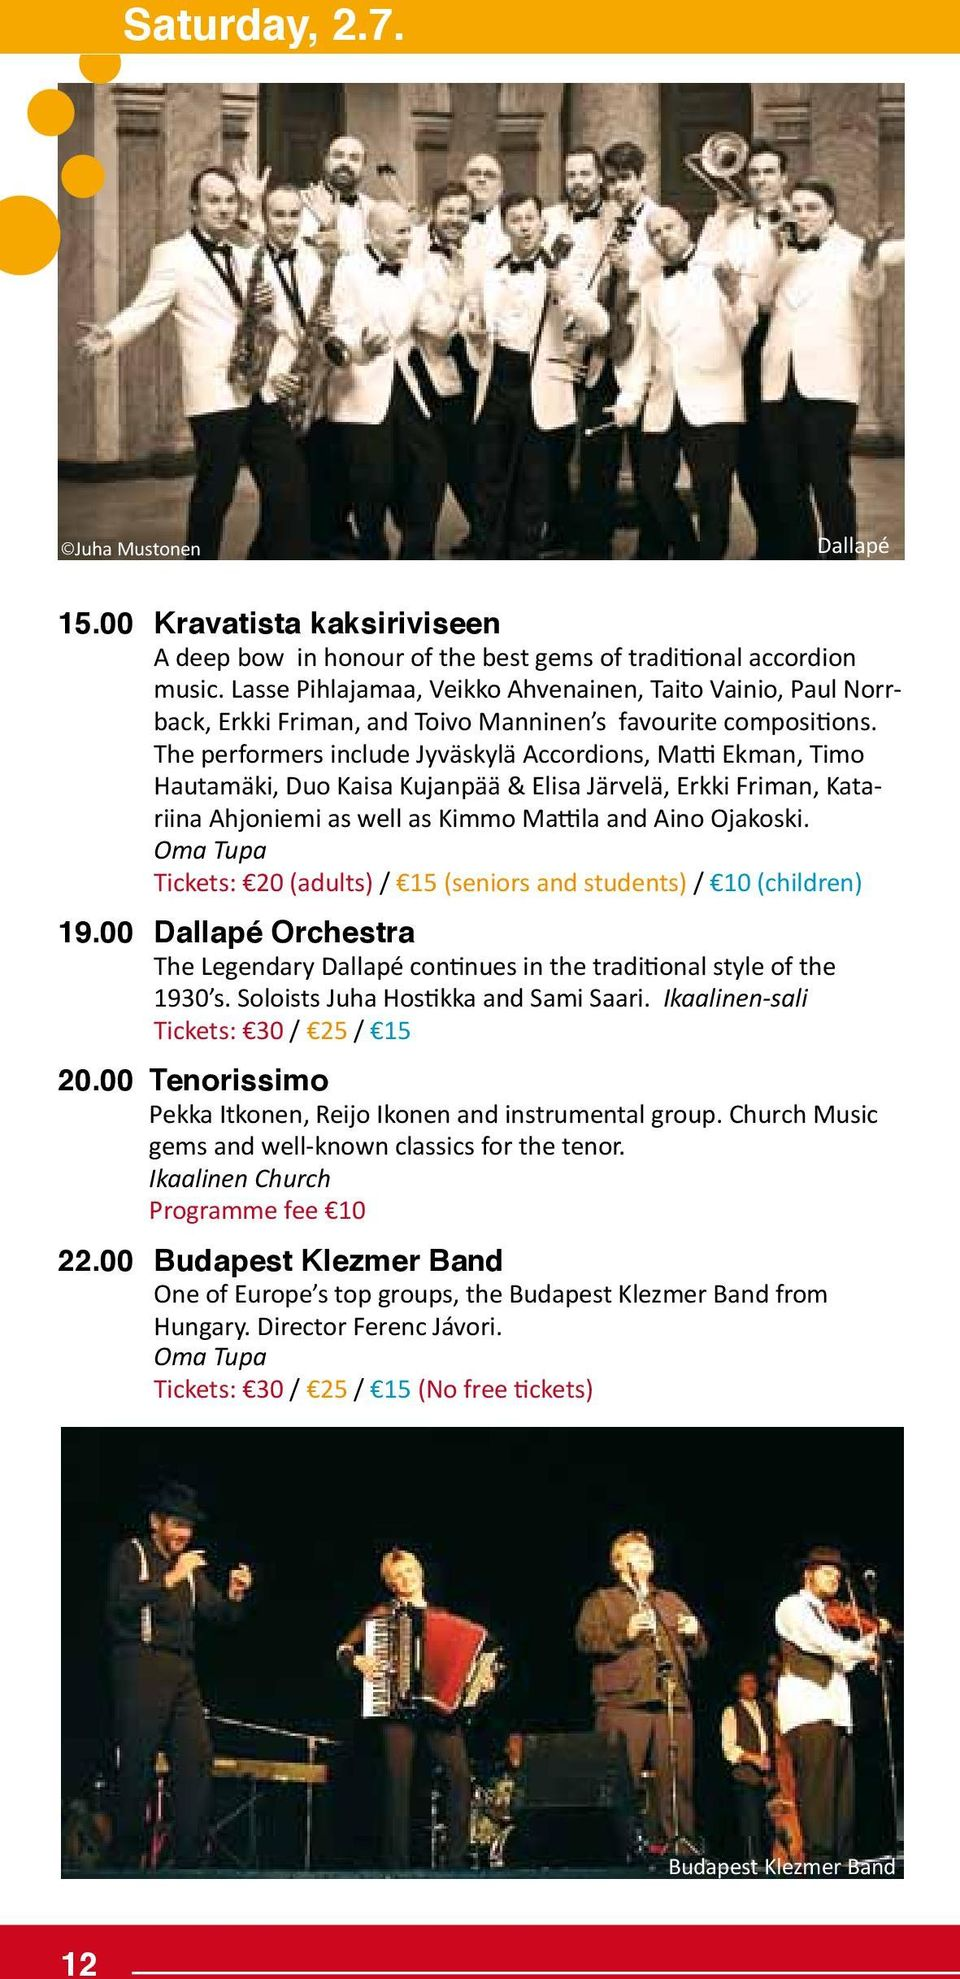 The performers include Jyväskylä Accordions, Matti Ekman, Timo Hautamäki, Duo Kaisa Kujanpää & Elisa Järvelä, Erkki Friman, Katariina Ahjoniemi as well as Kimmo Mattila and Aino Ojakoski.